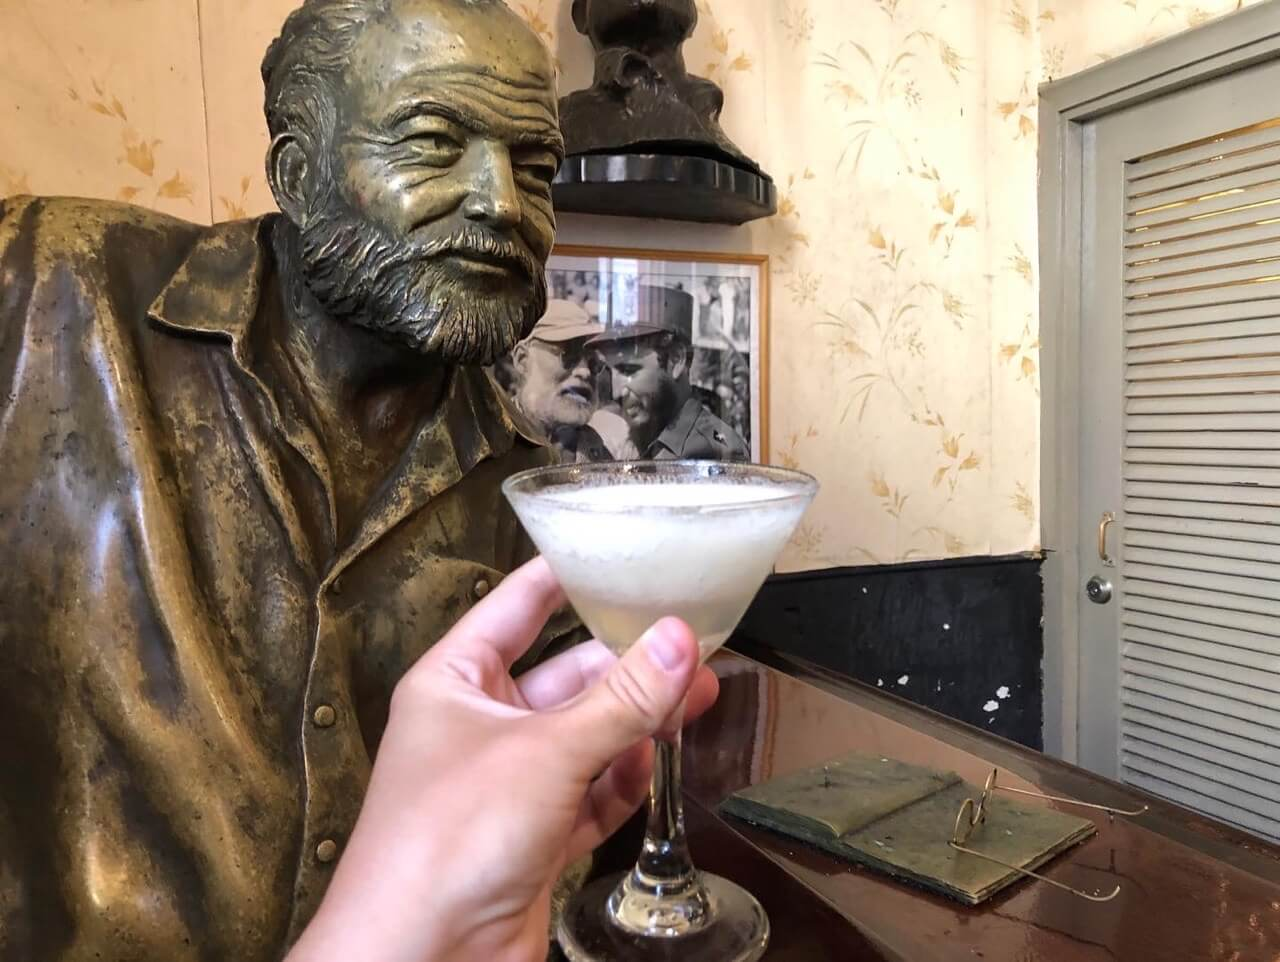 Hemingway daiquiri at La Floridita bar in Havana Cuba